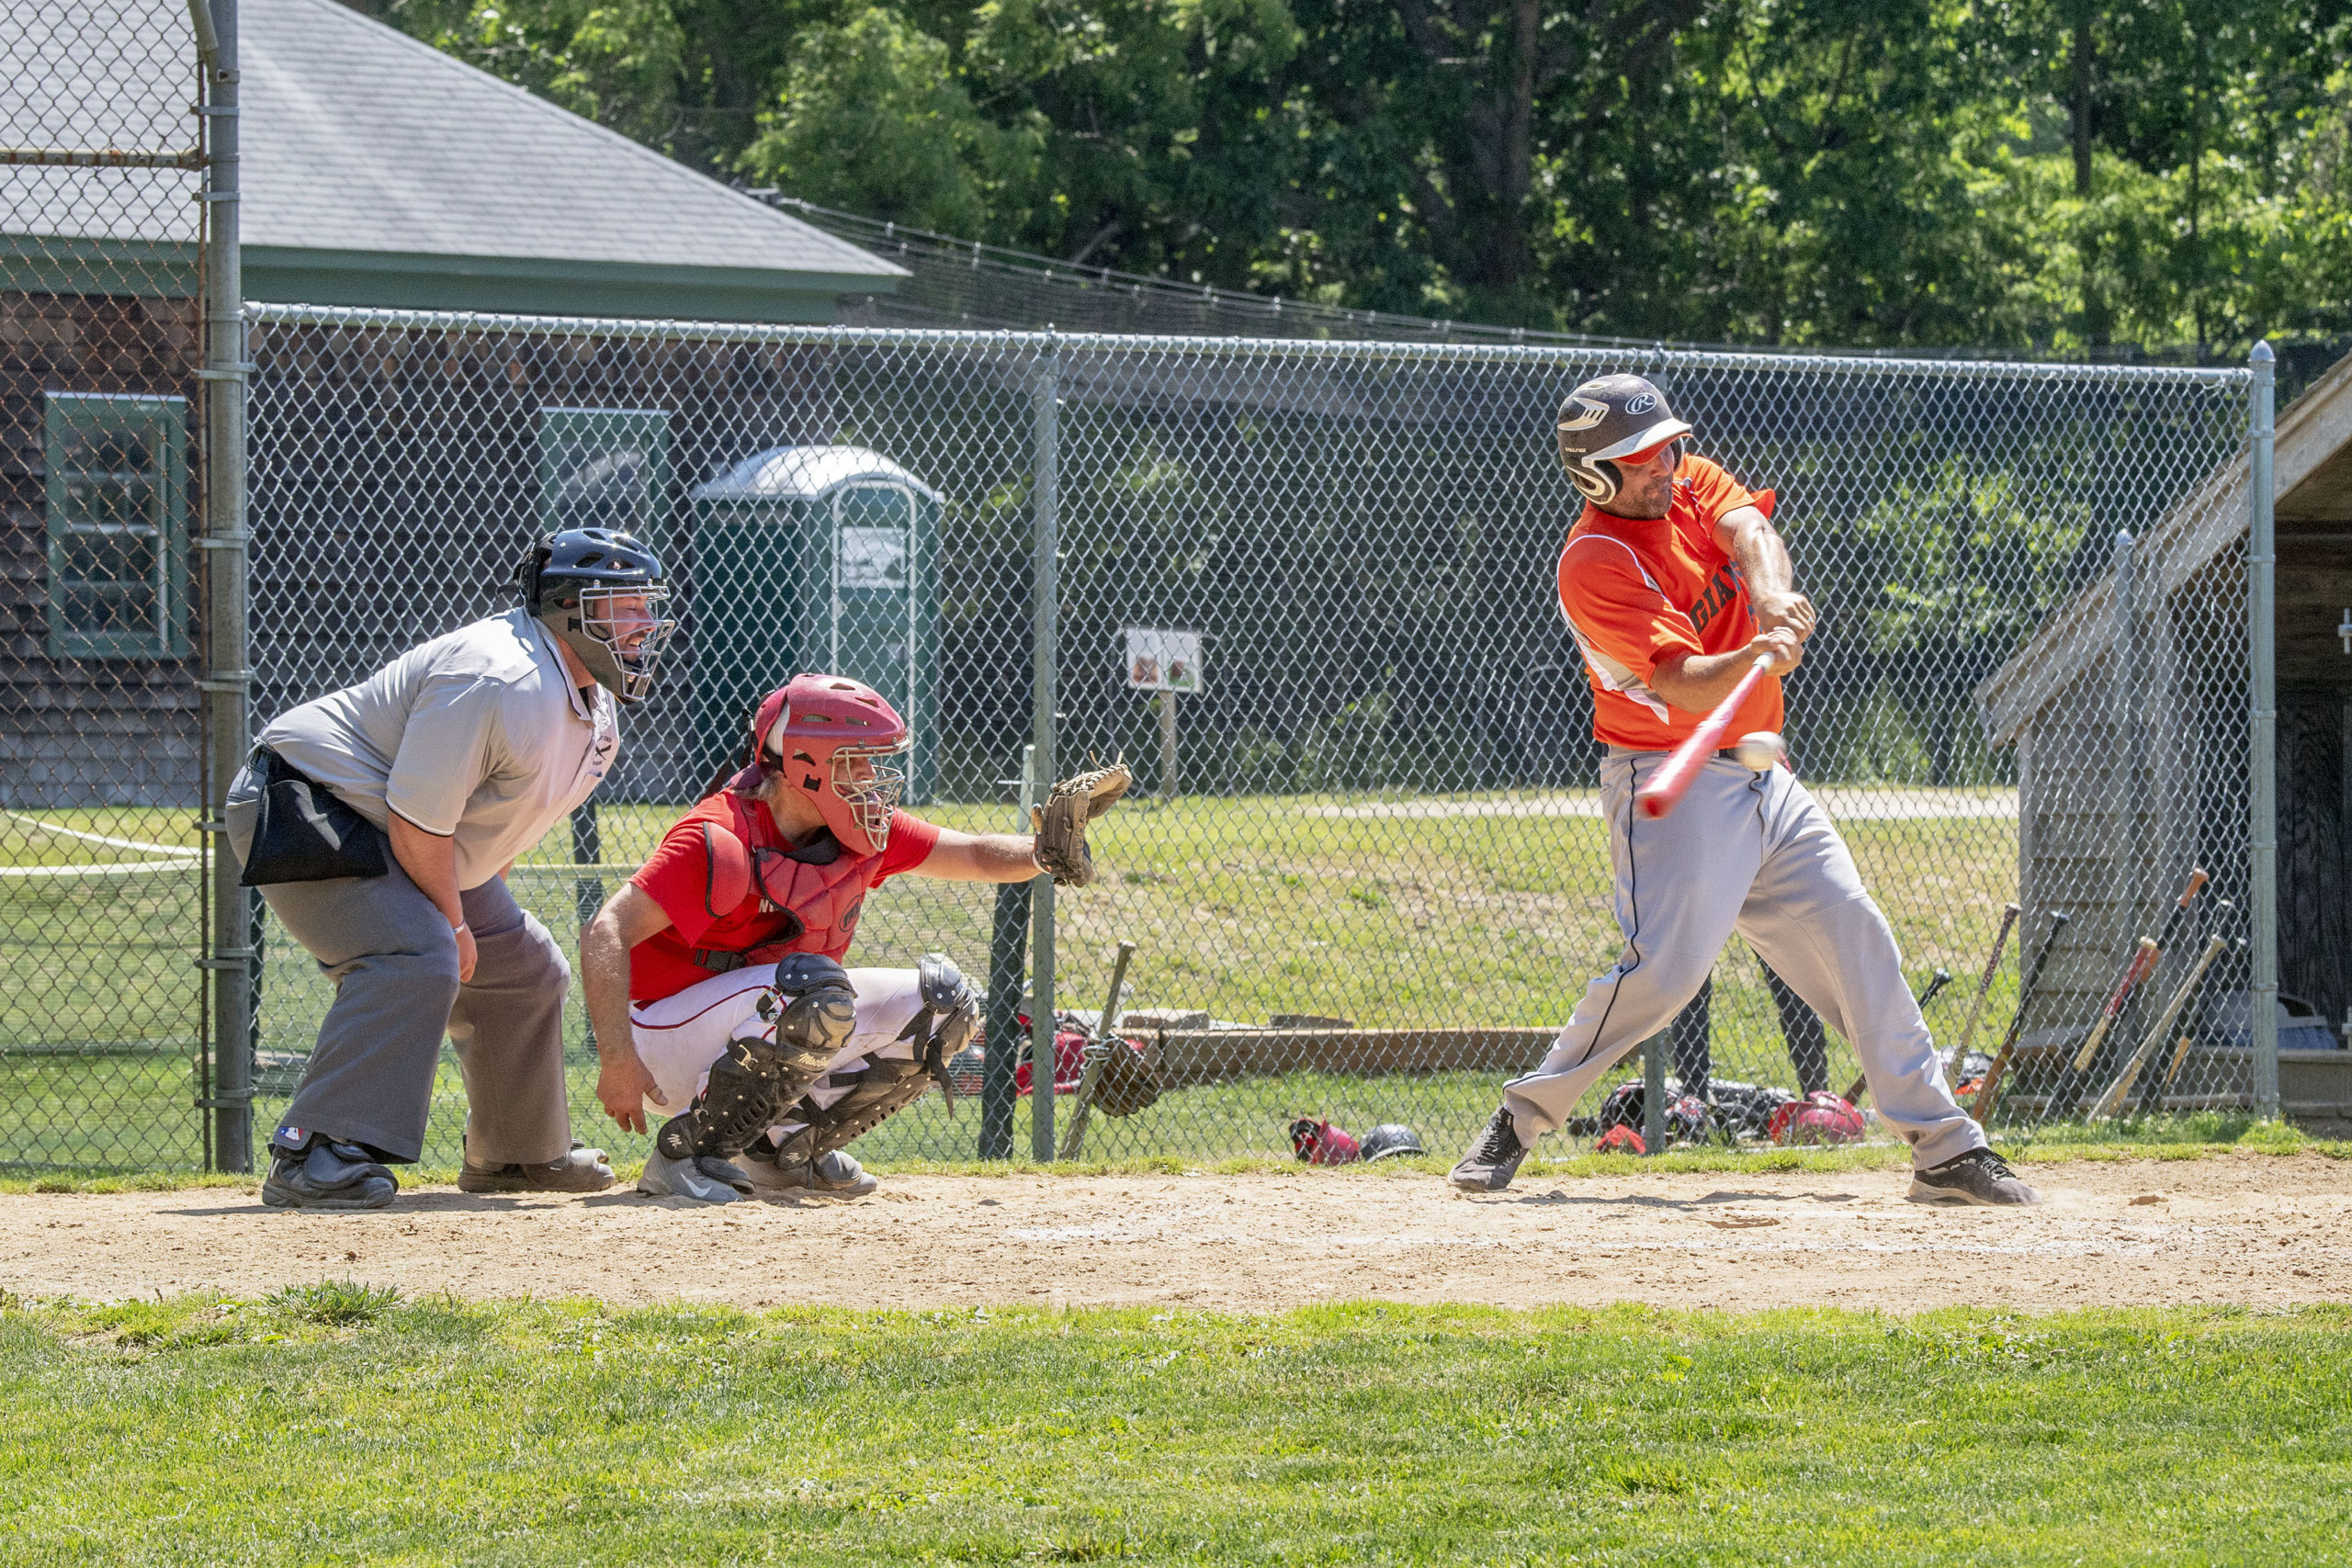 Hamptons Adult Hardball League South Fork Giants took on the New York Reds during the league's inaugural game at Mashashimuet Park in Sag Harbor on Sunday.